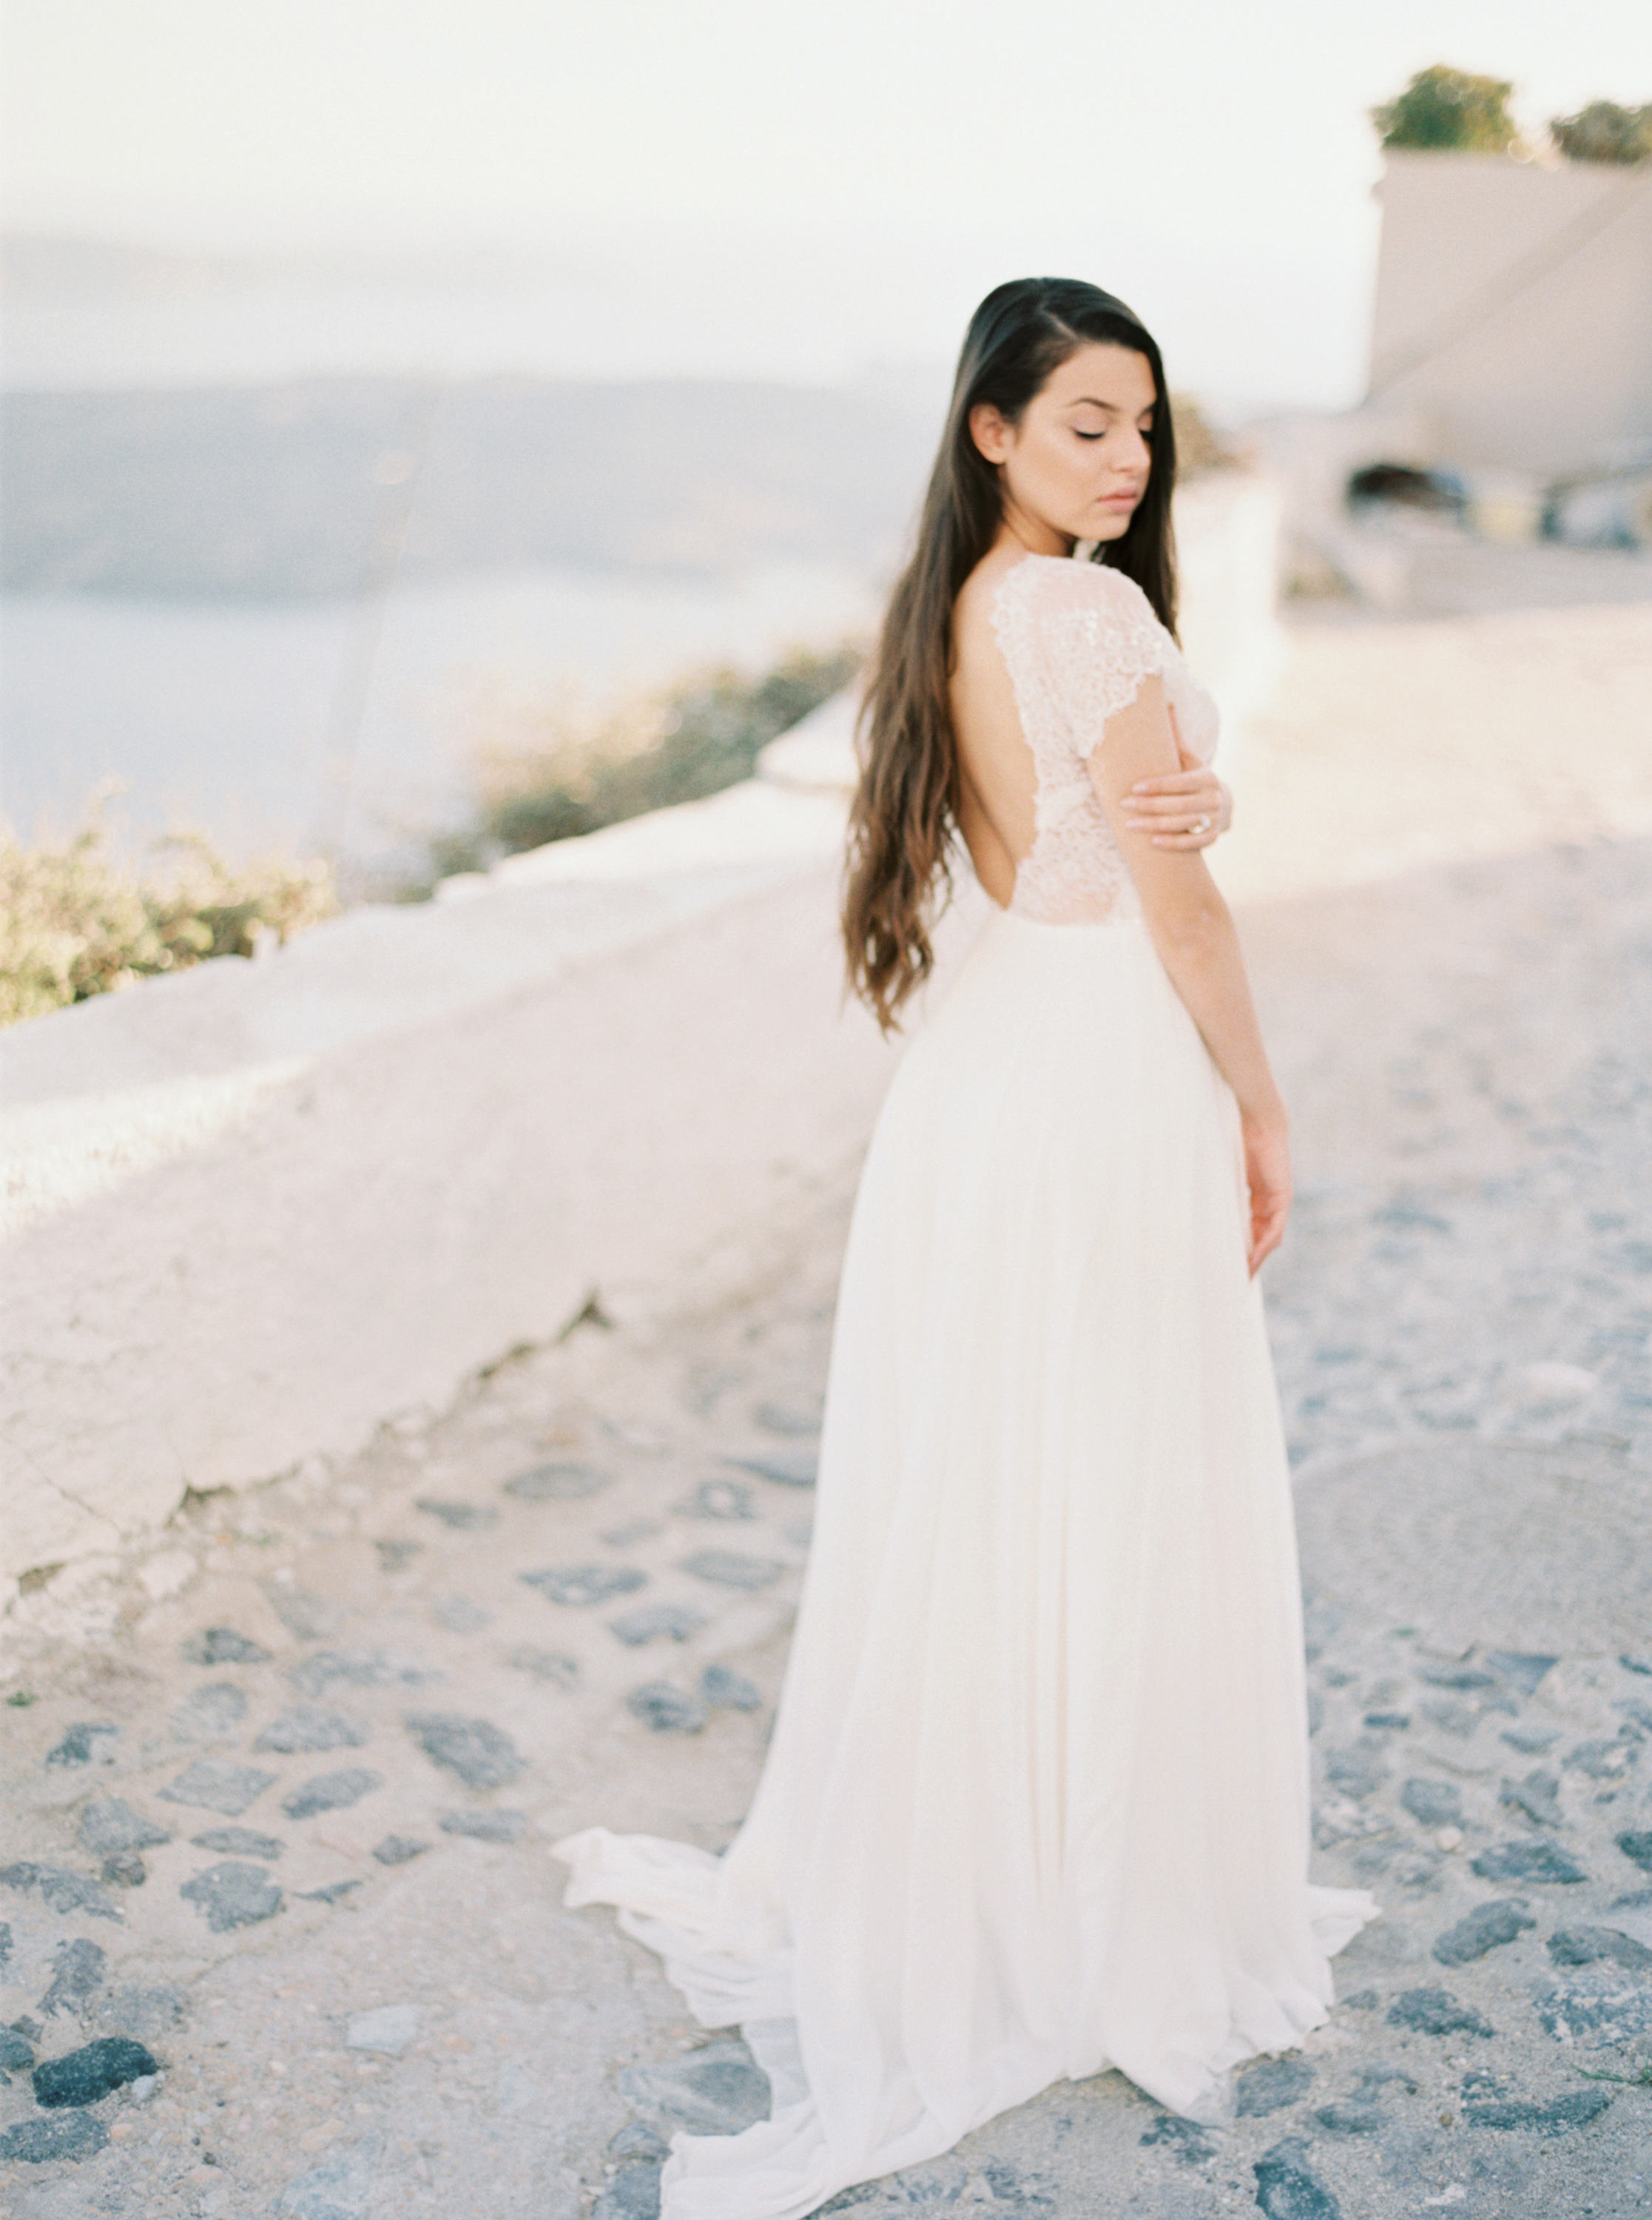 trynhphoto-photographer-destination-Santorini-Mykonos-Italy-France-wedding-photographer-destination-weddingplanner-56.jpg